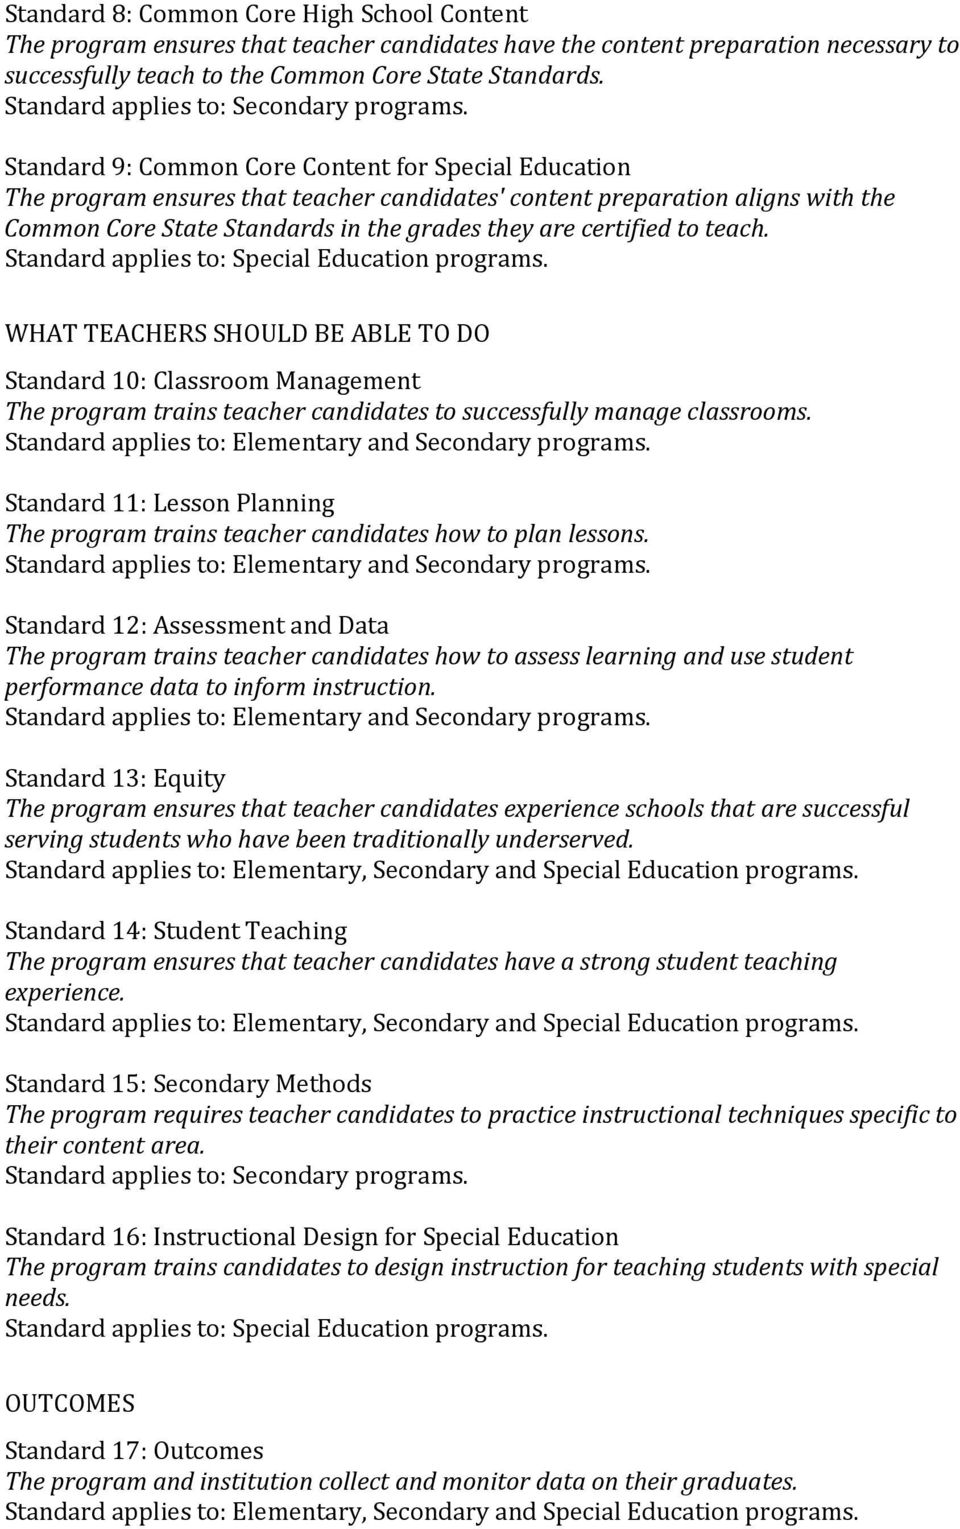 Standard 9: Common Core Content for Special Education The program ensures that teacher candidates' content preparation aligns with the Common Core State Standards in the grades they are certified to